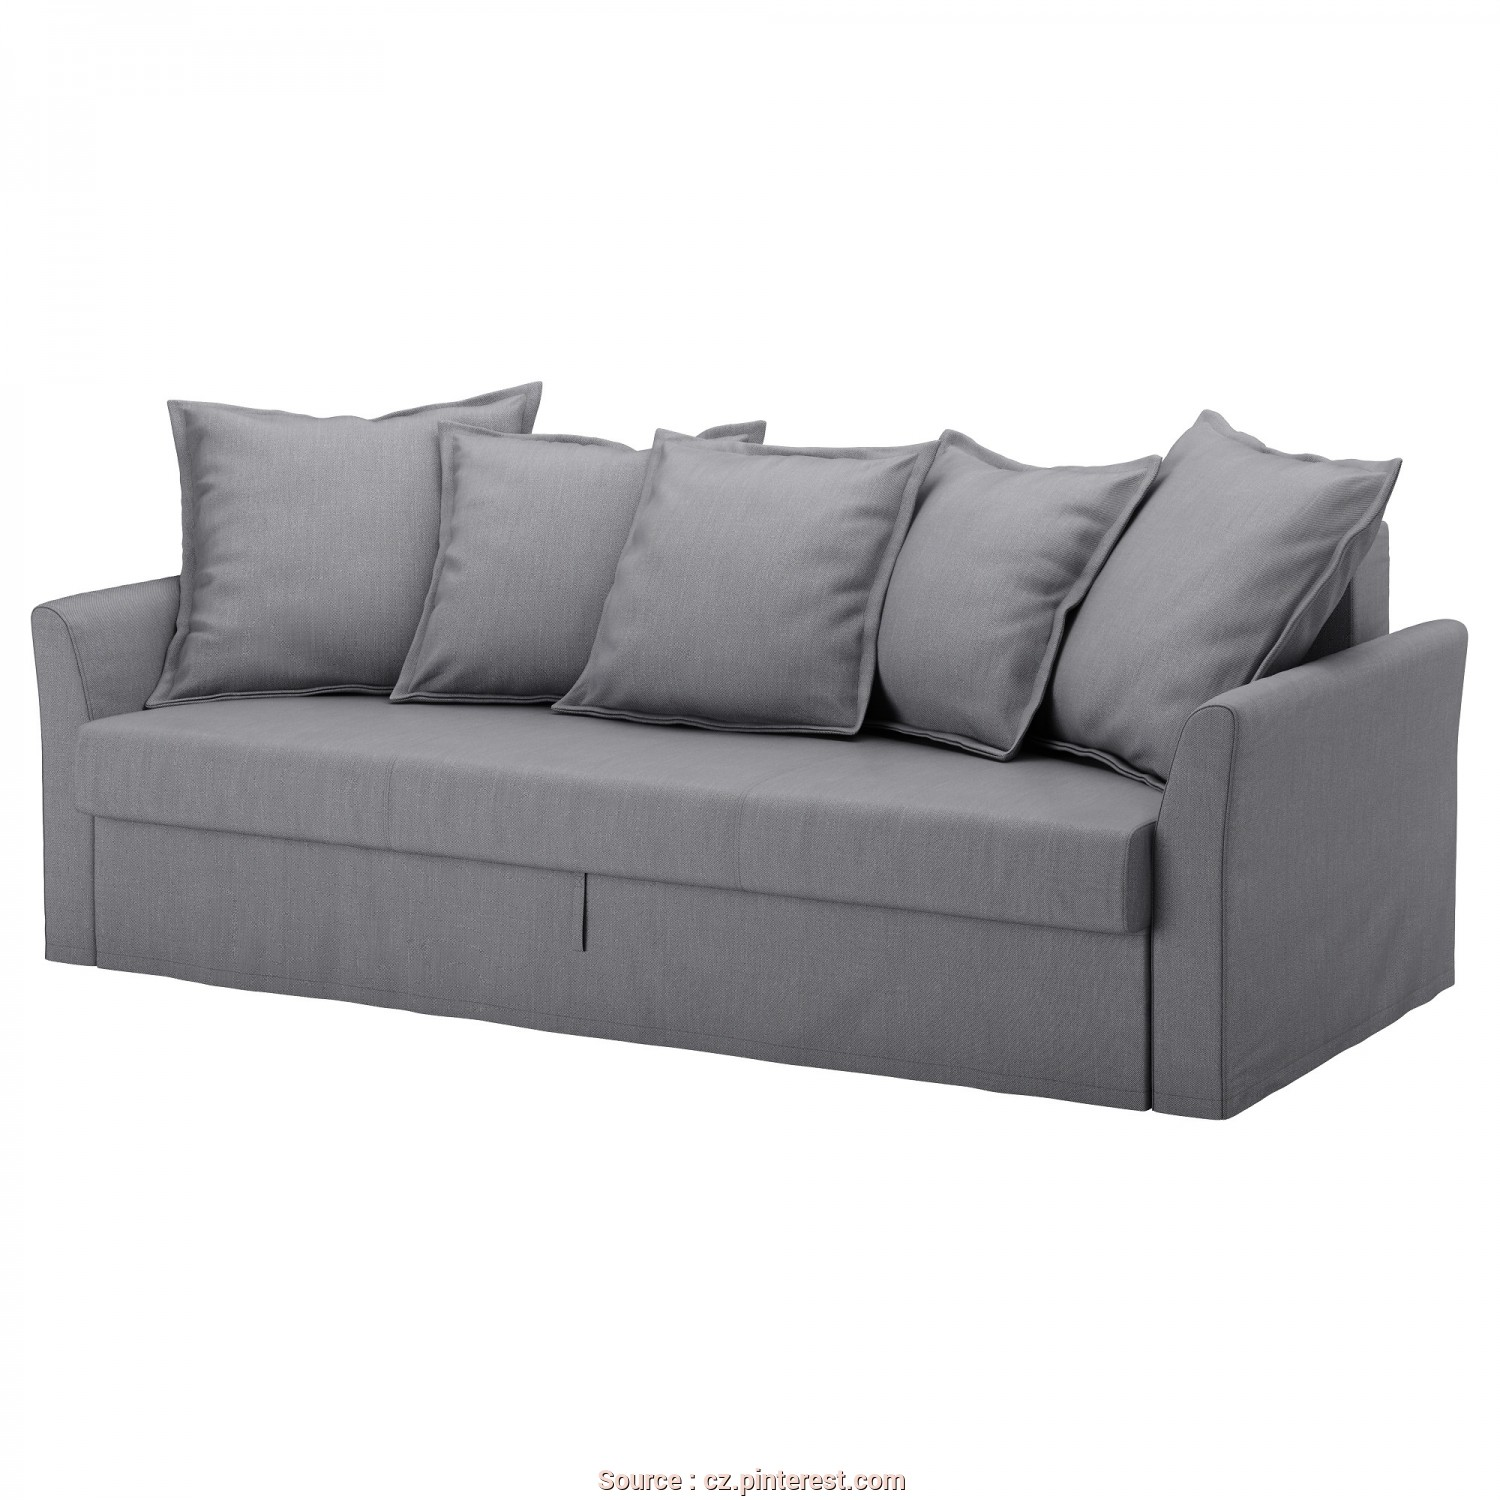 Backabro Bettsofa Ikea, Sbalorditivo HOLMSUND Cover, Sofa-Bed, Nordvalla Medium Gray In 2018, Ikea